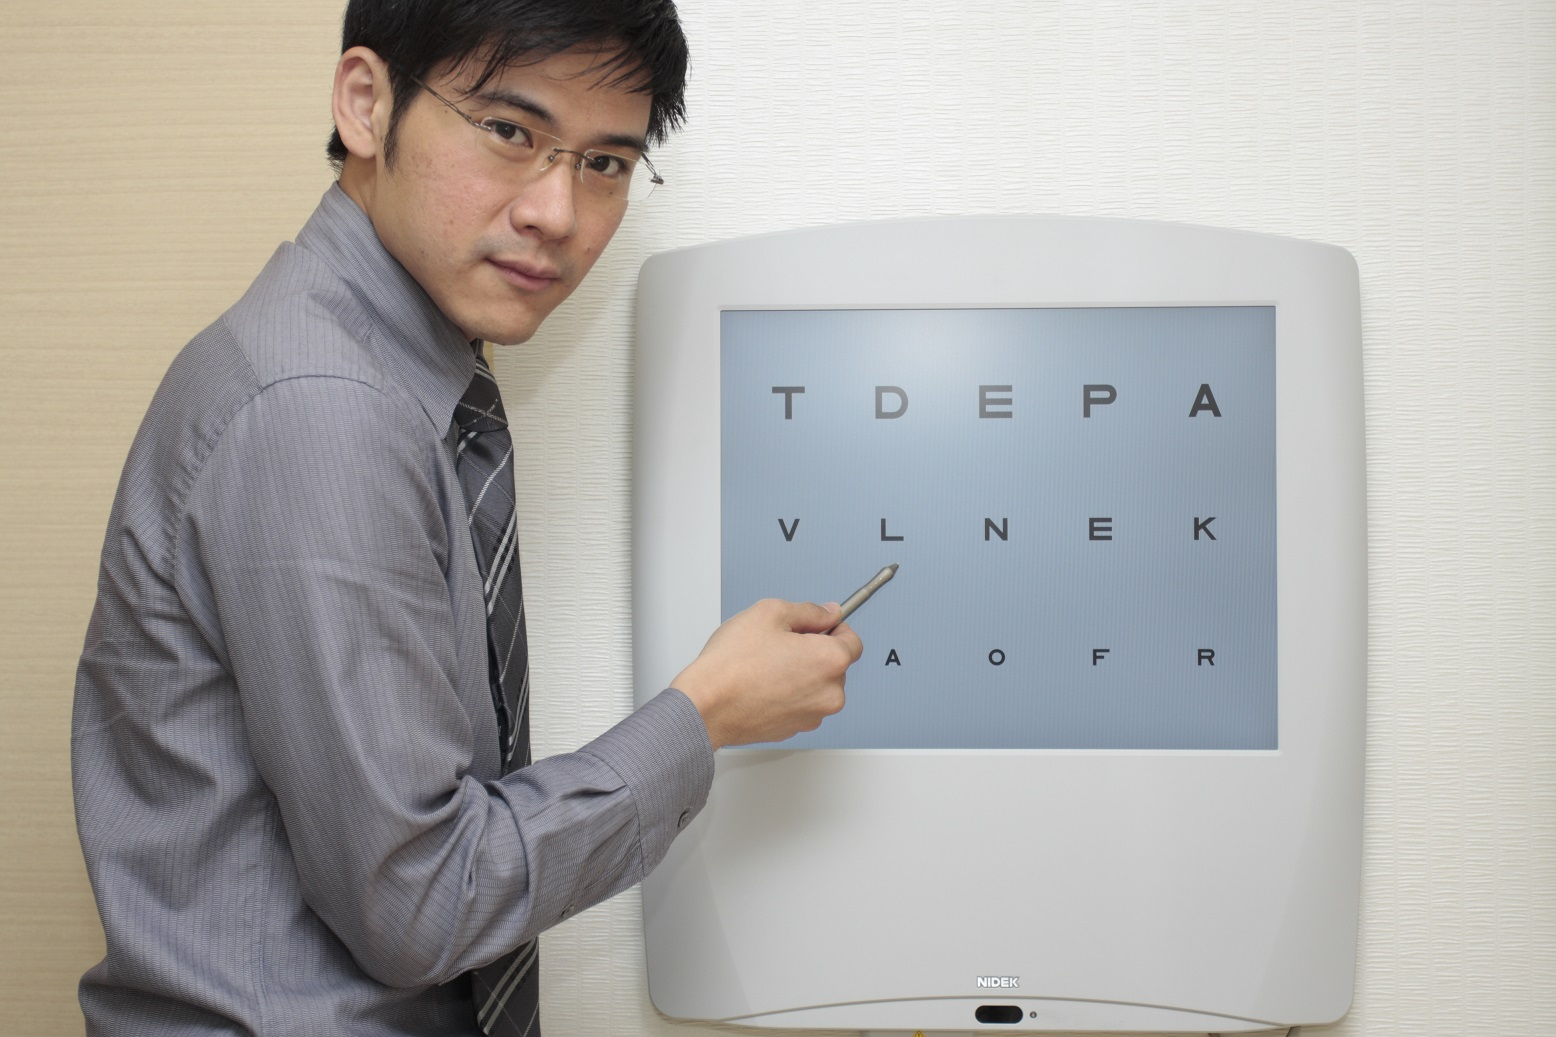 Regular comprehensive eye examinations is important for everyone but especially those with diabetes to preserve sight.